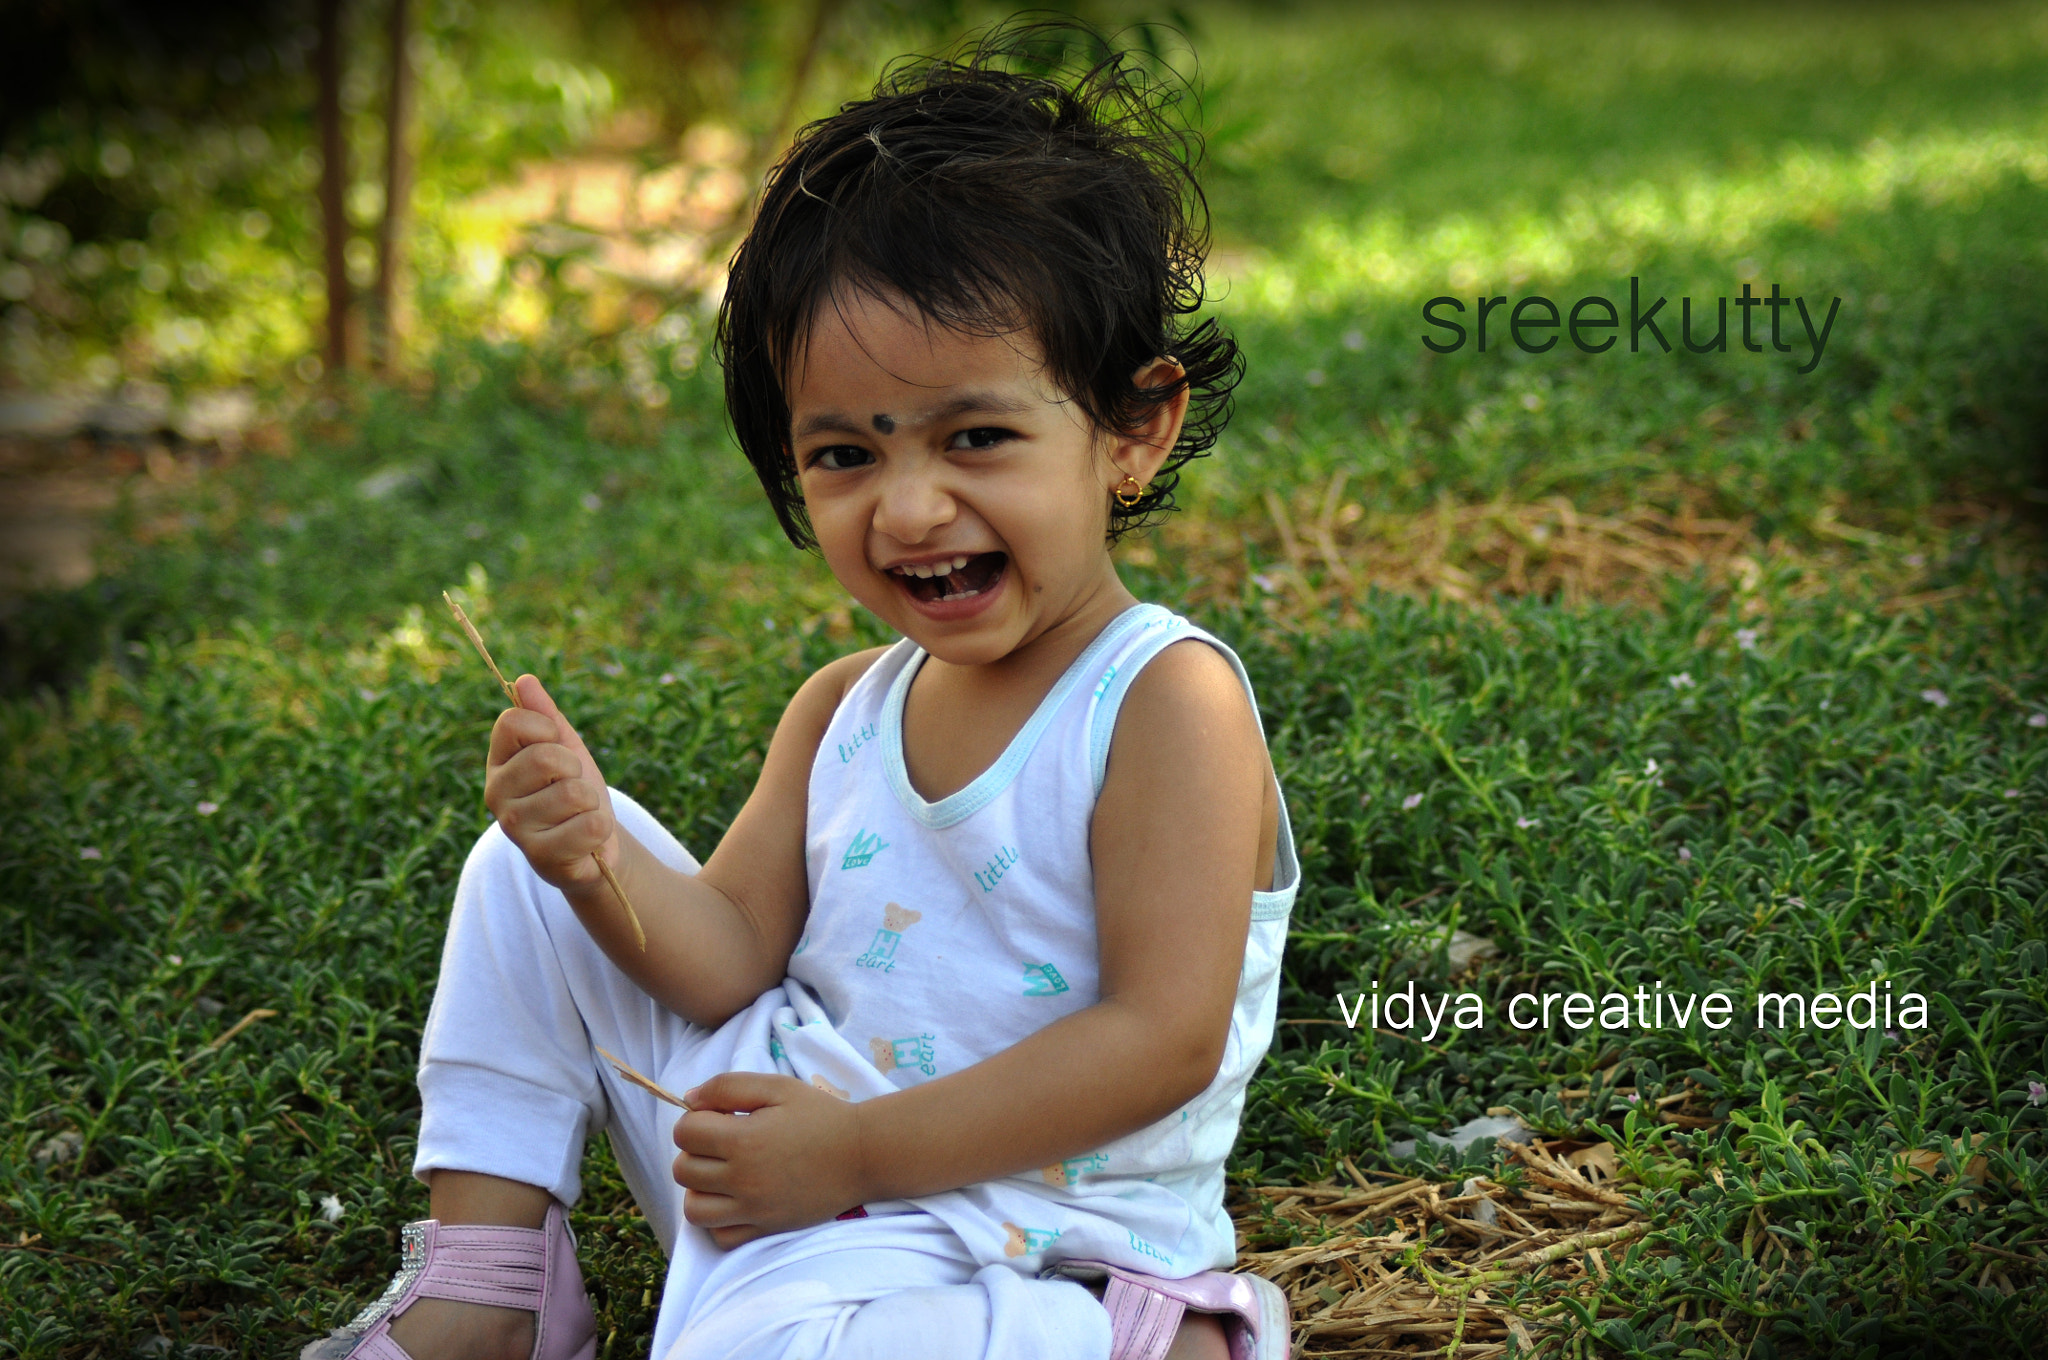 Photograph Kids photography. Portraits by vidya creative media & photography - Shamjith Sreevidya on 500px